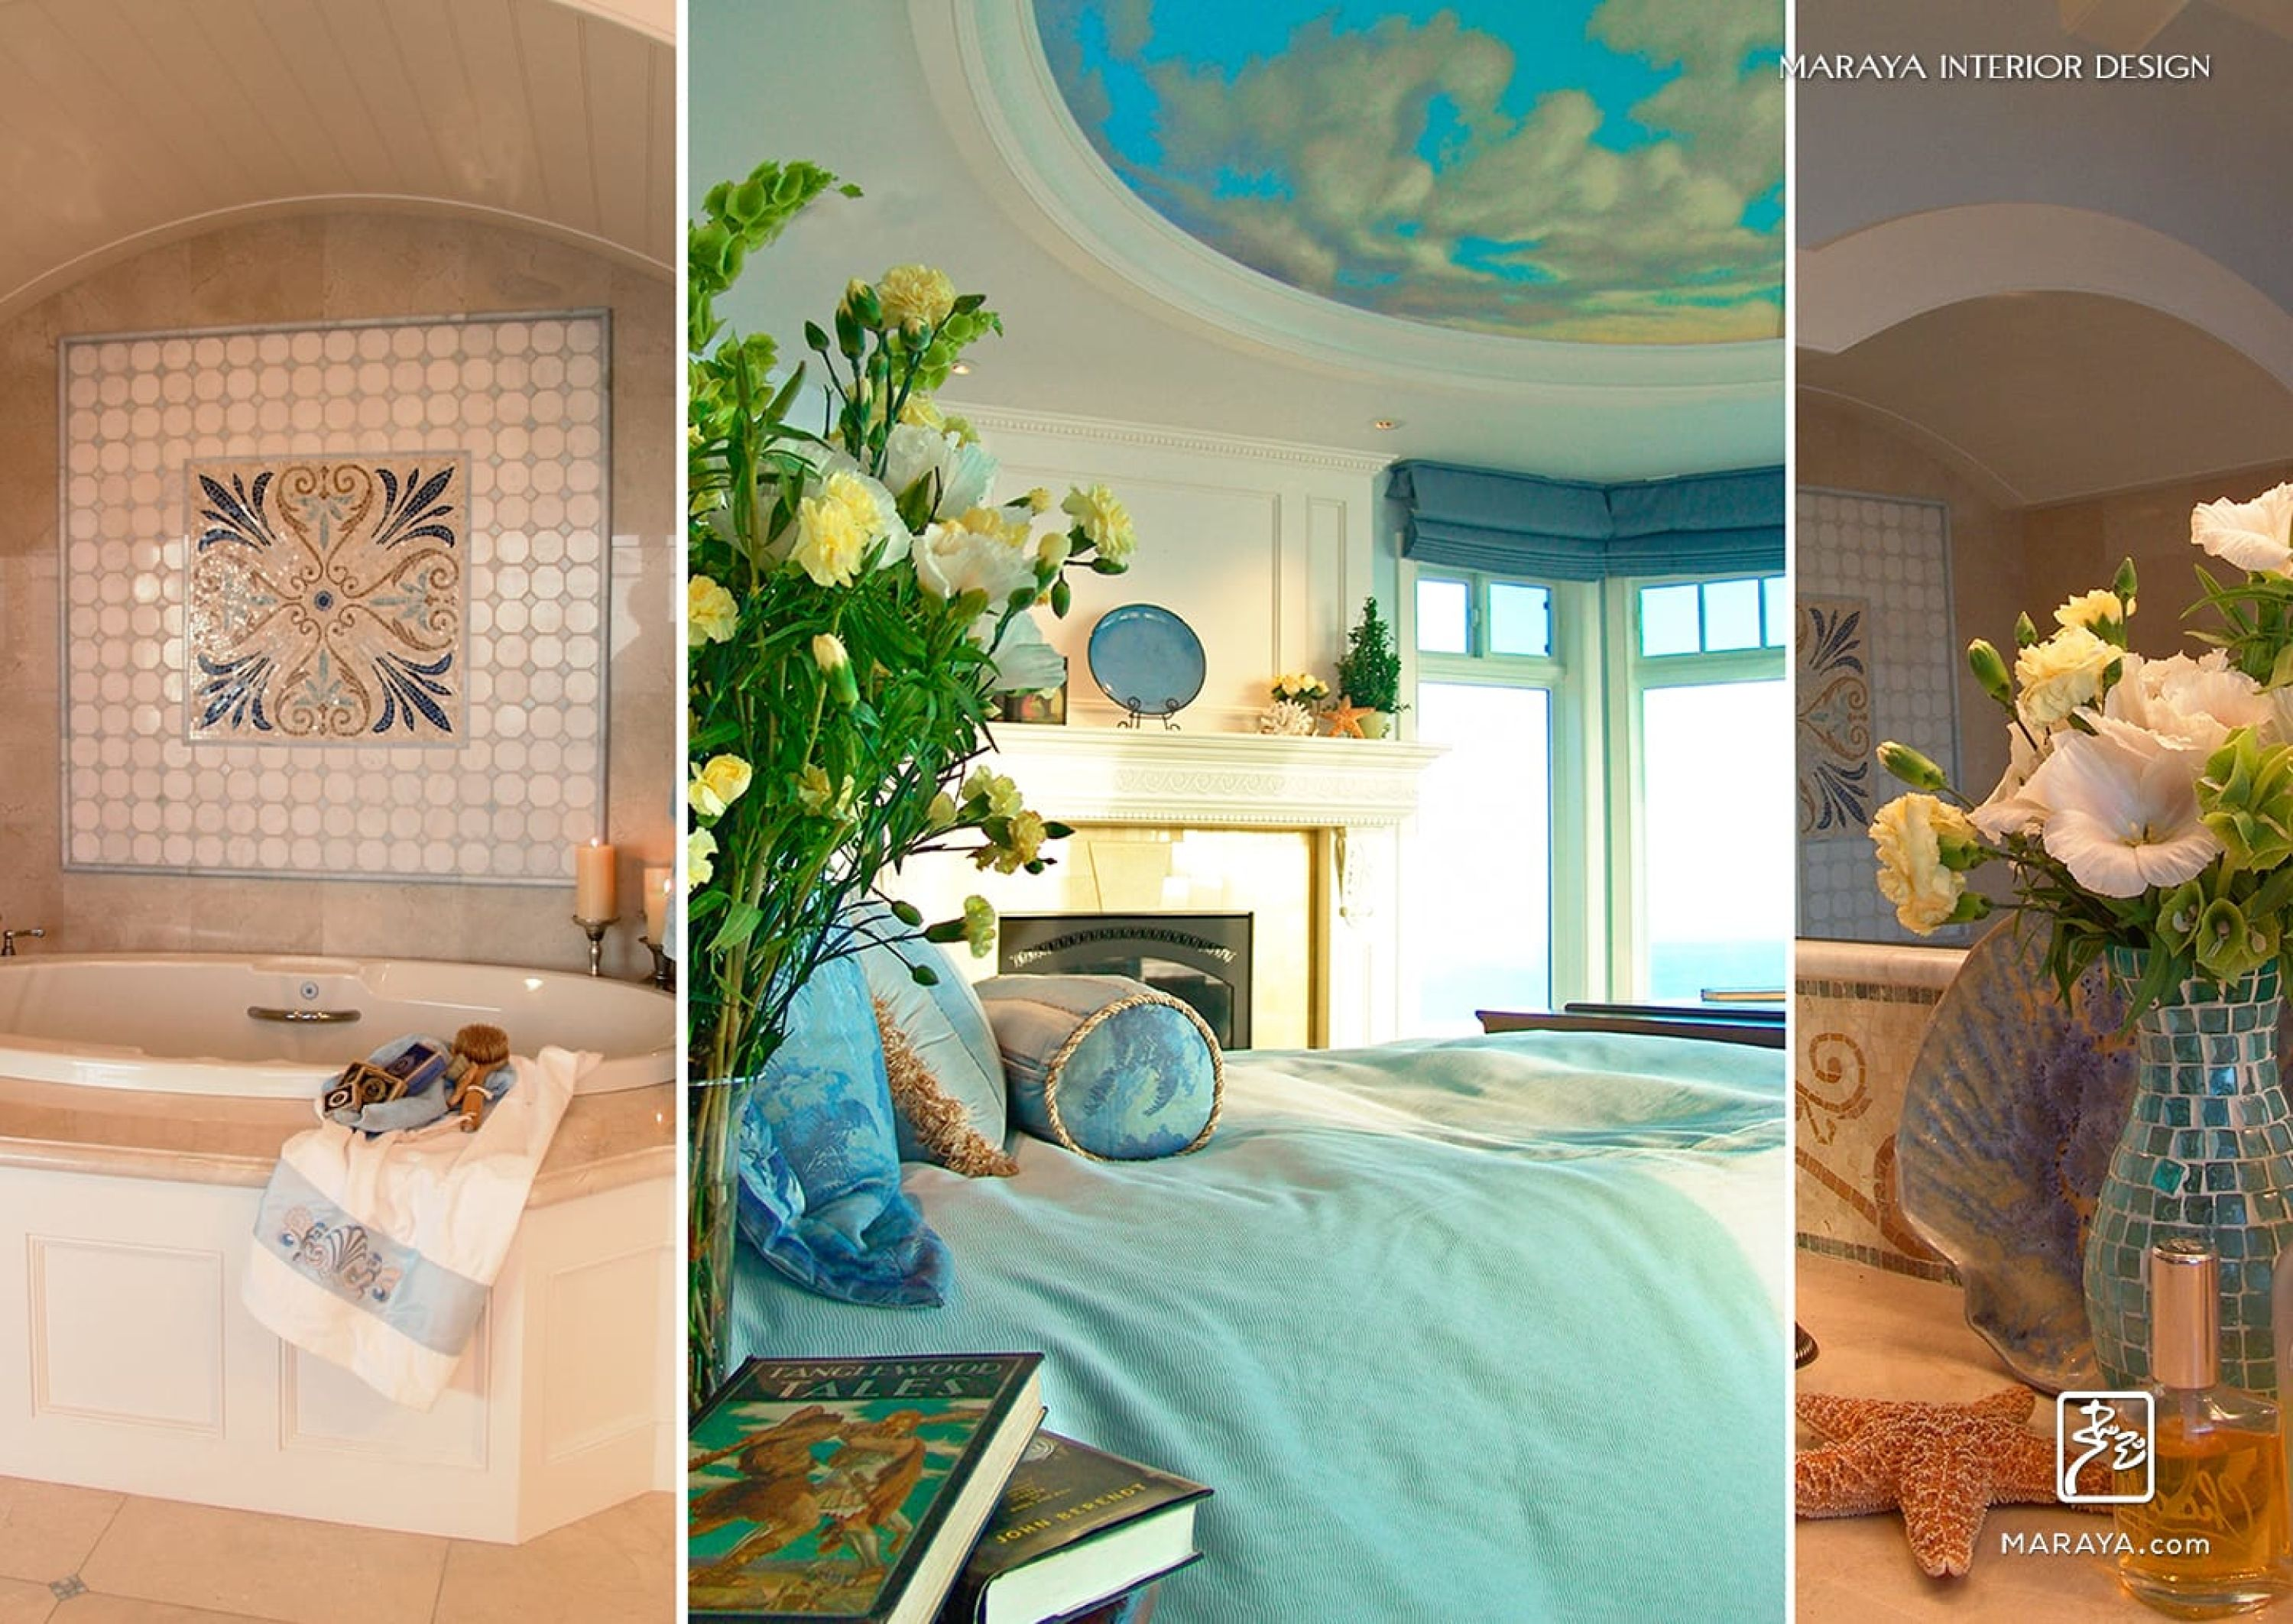 Cape cod beach home master bath with mosaics and domed sky ceiling in master bedroom.  maraya interior design